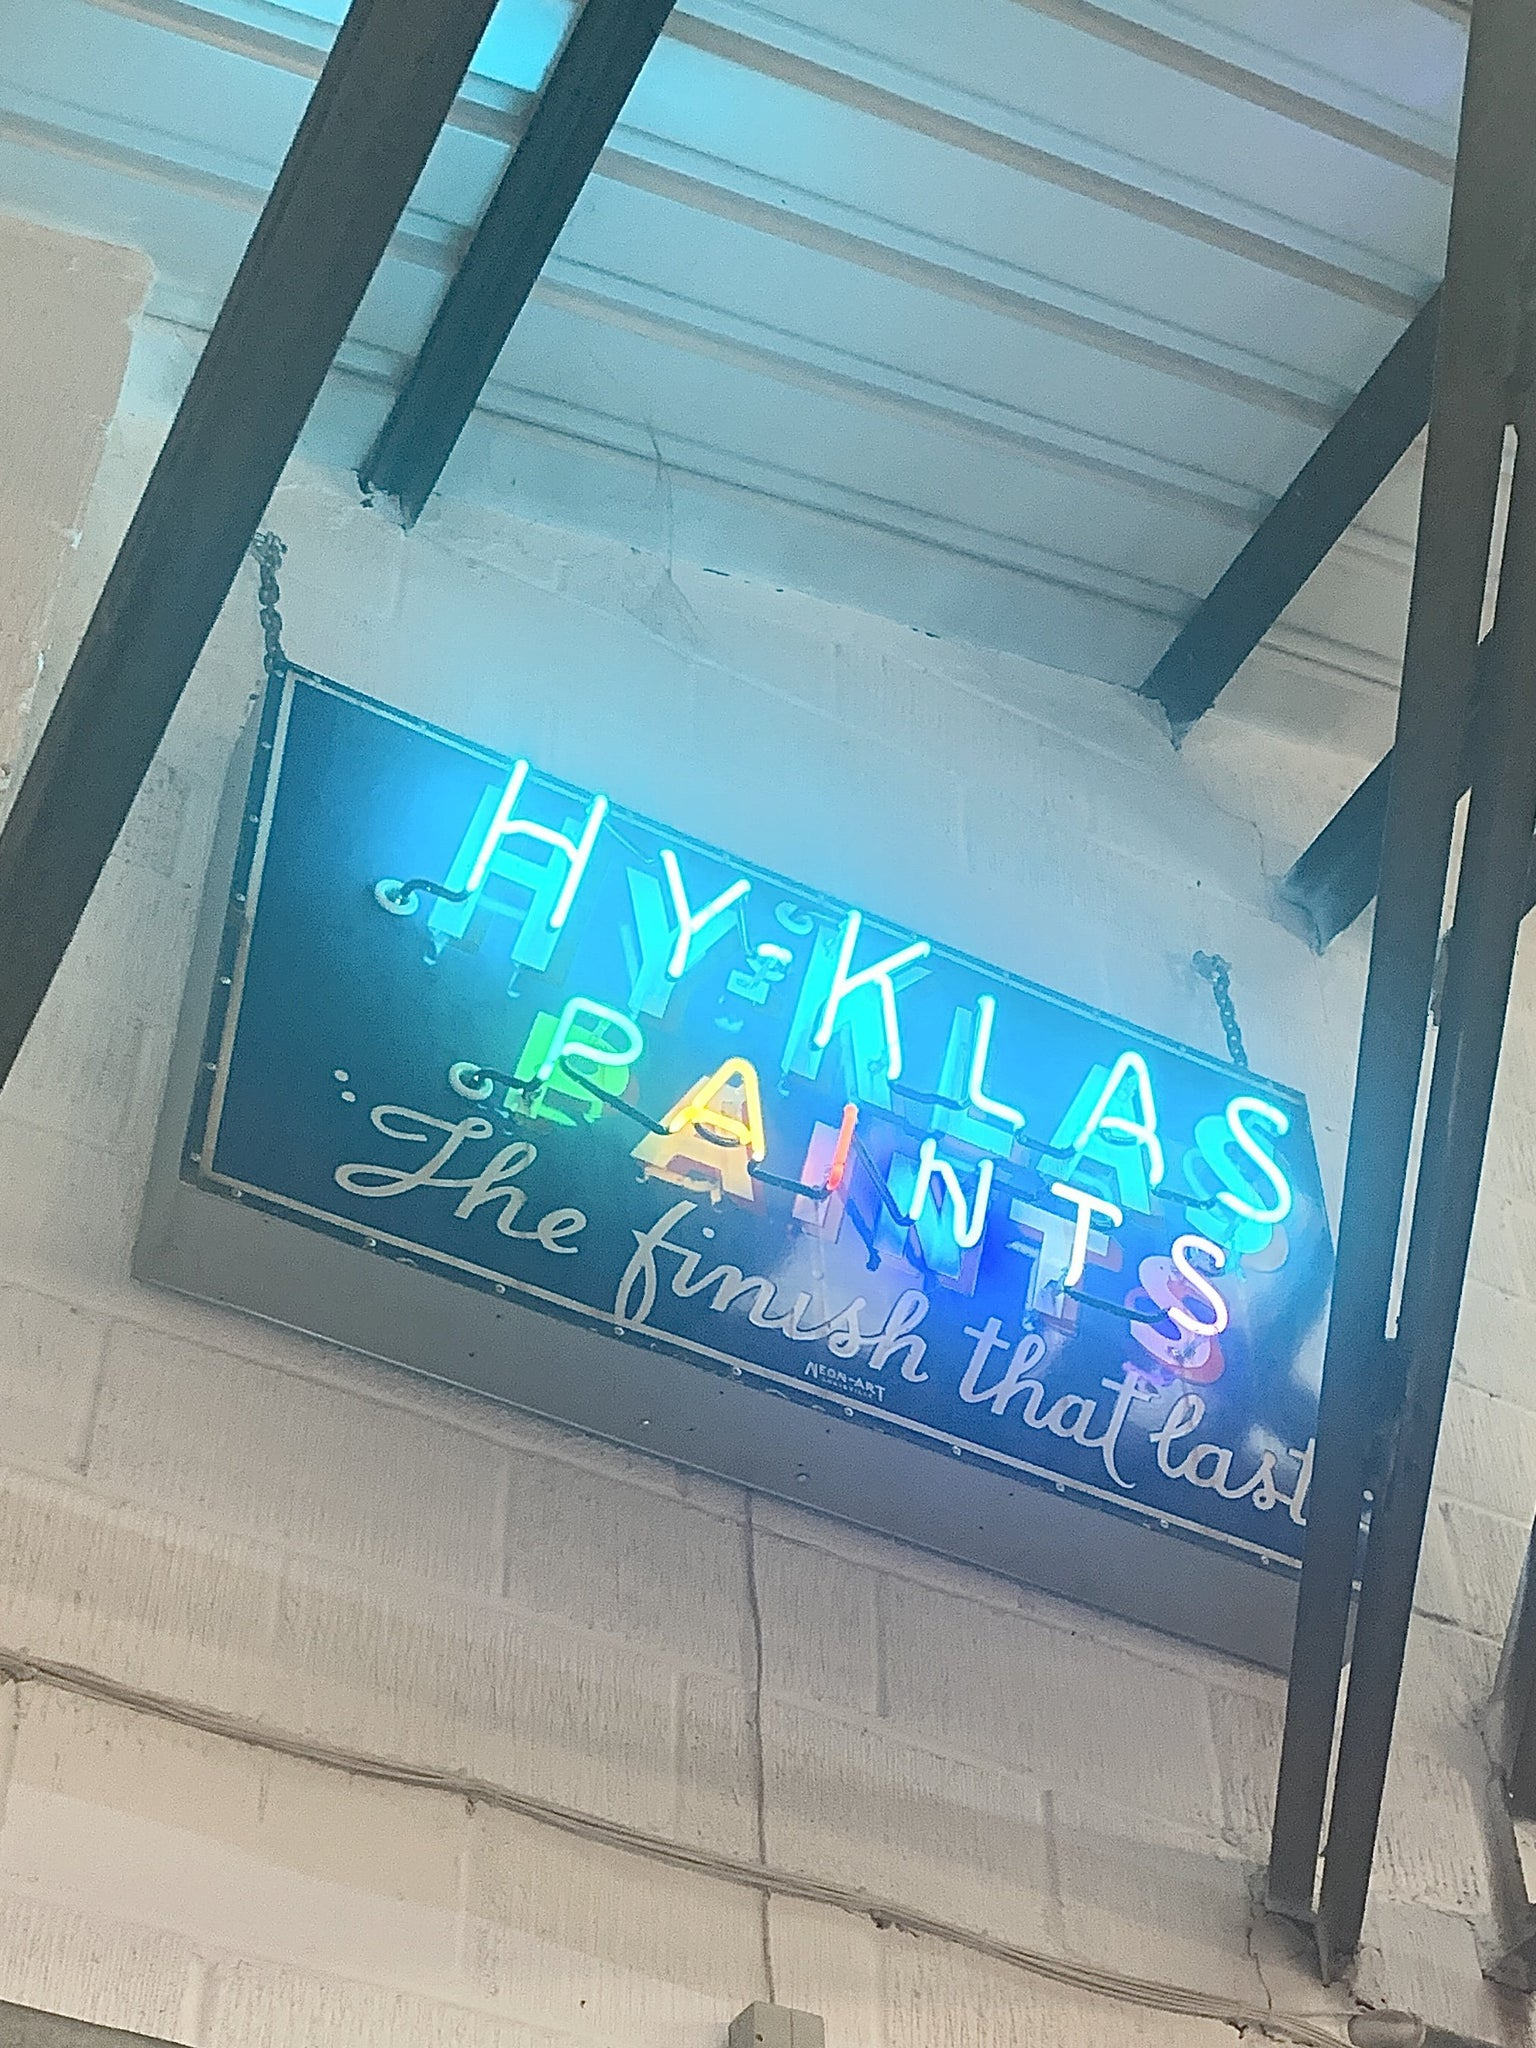 Vintage 1950s Neon Hy-Klas Paints Sign